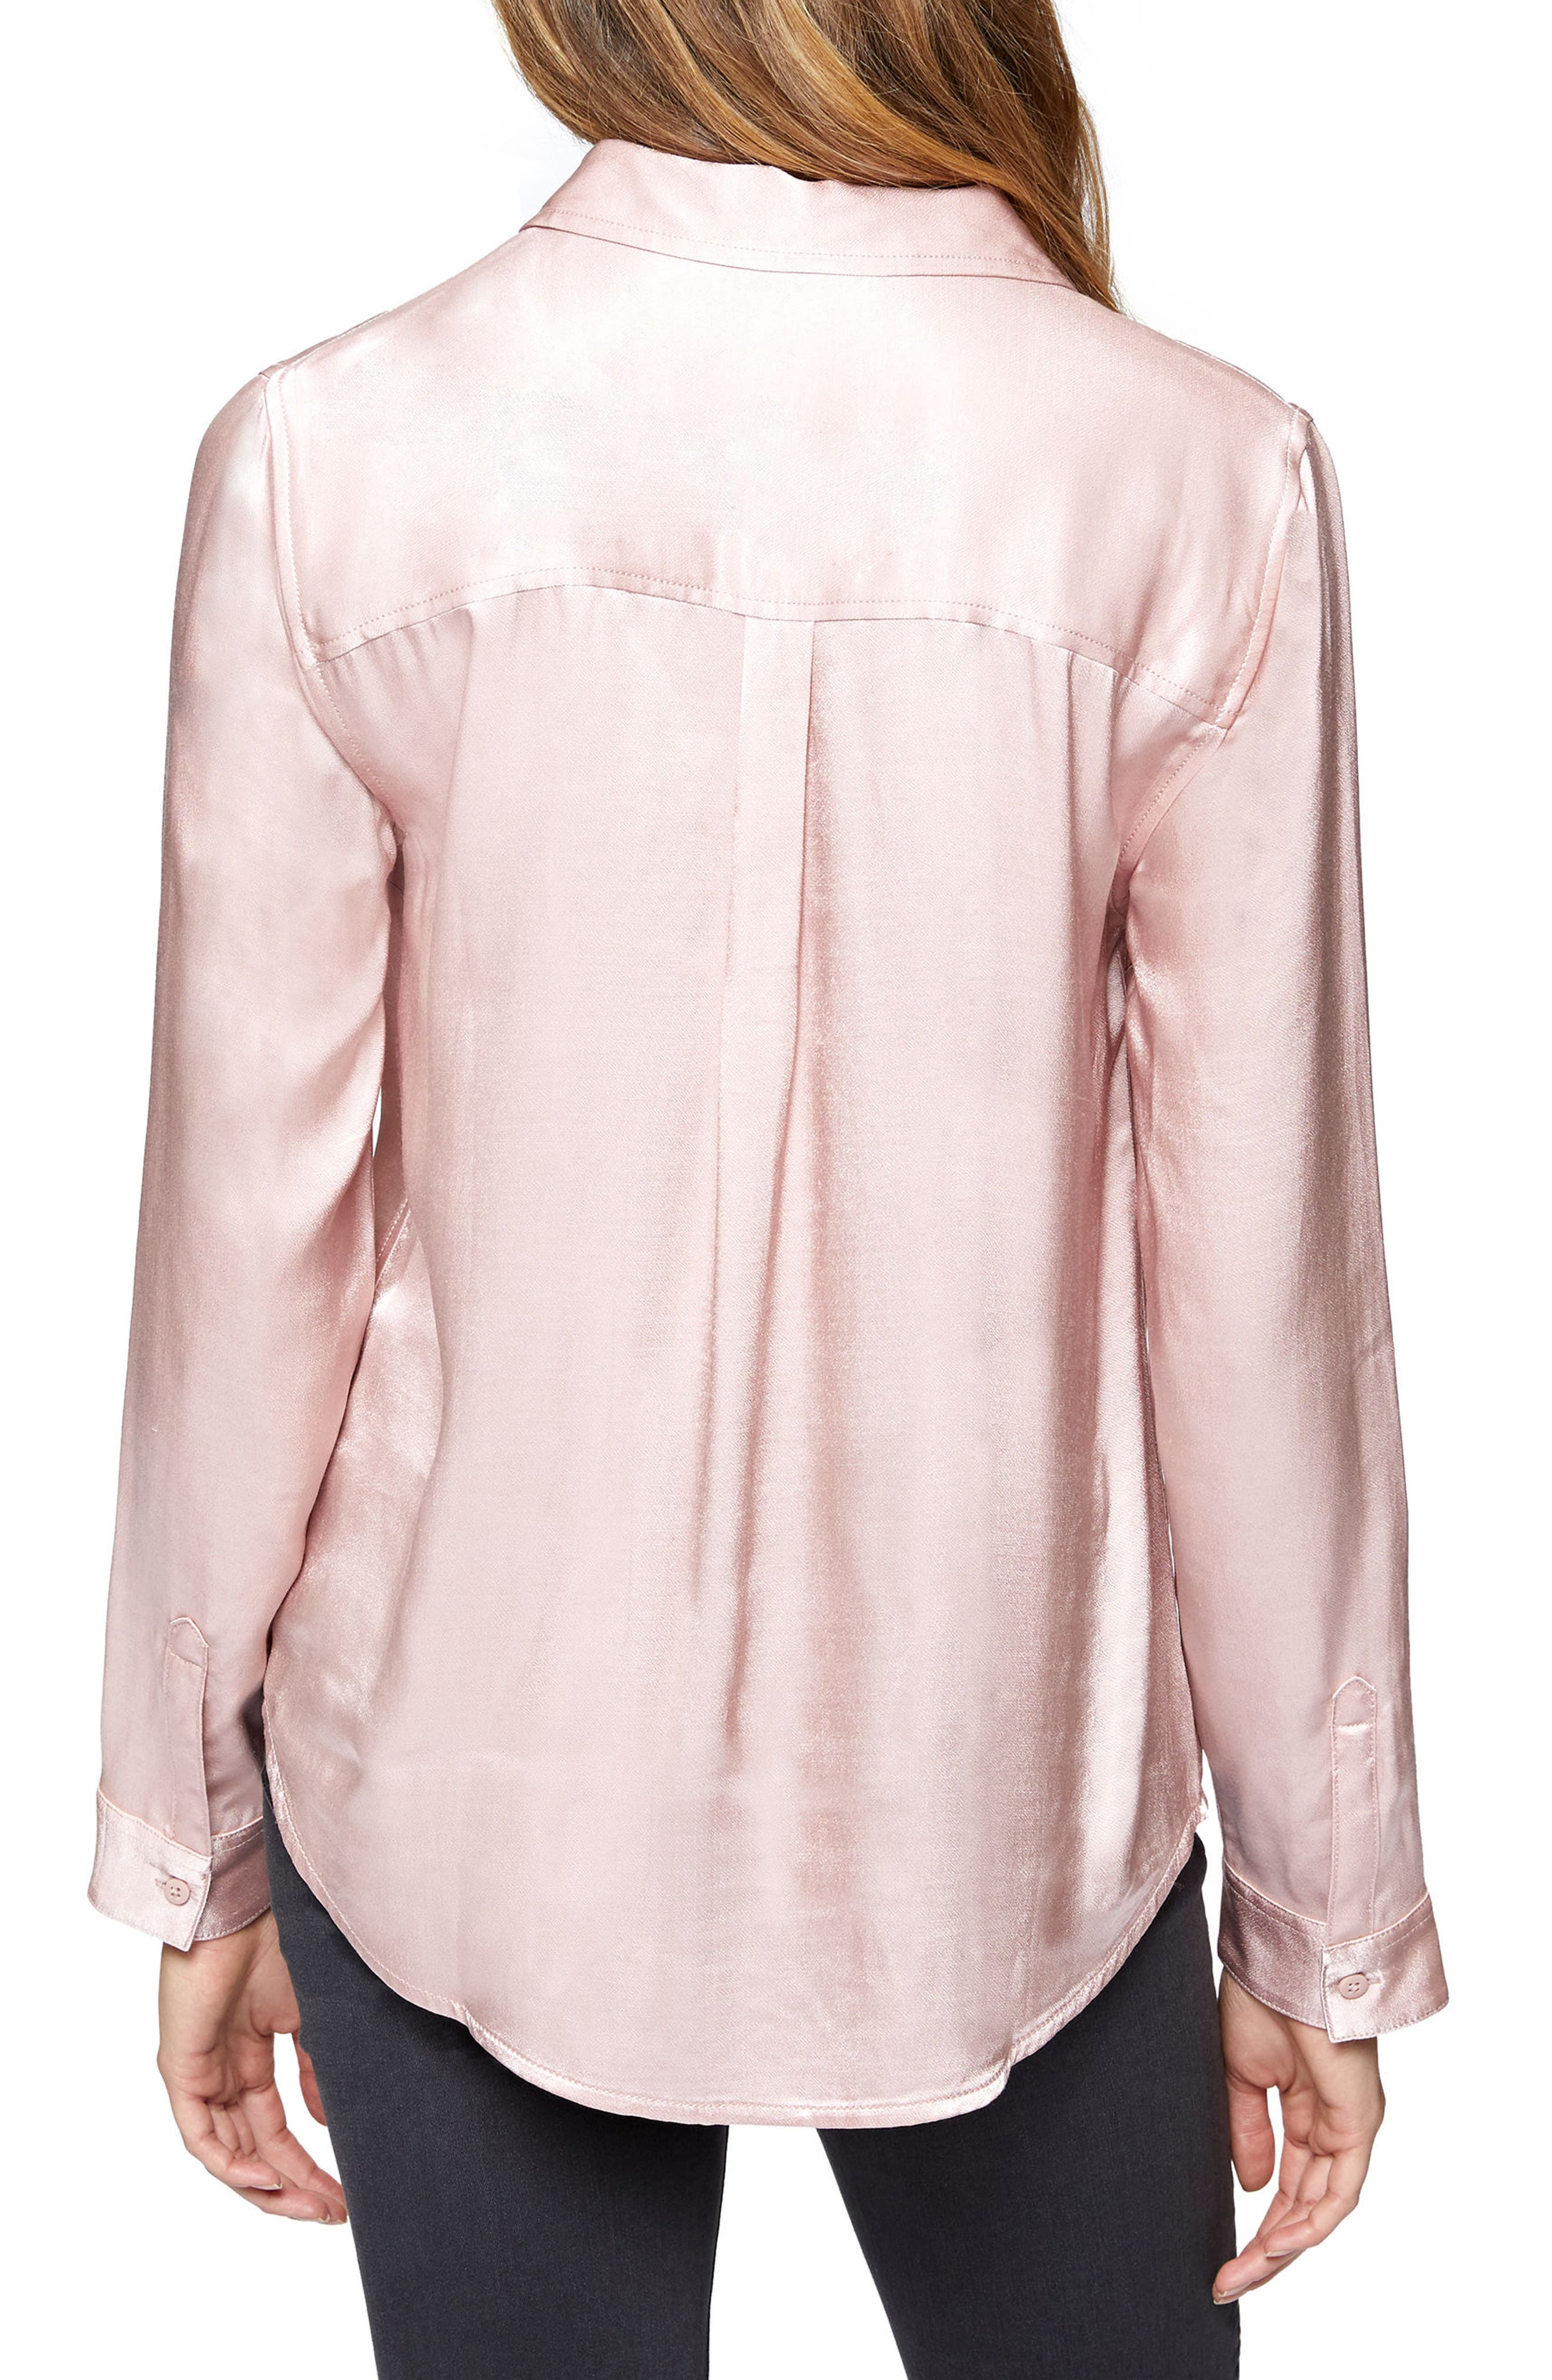 Dreamer Tie Front Shirt,                             Alternate thumbnail 2, color,                             Celestial Pink